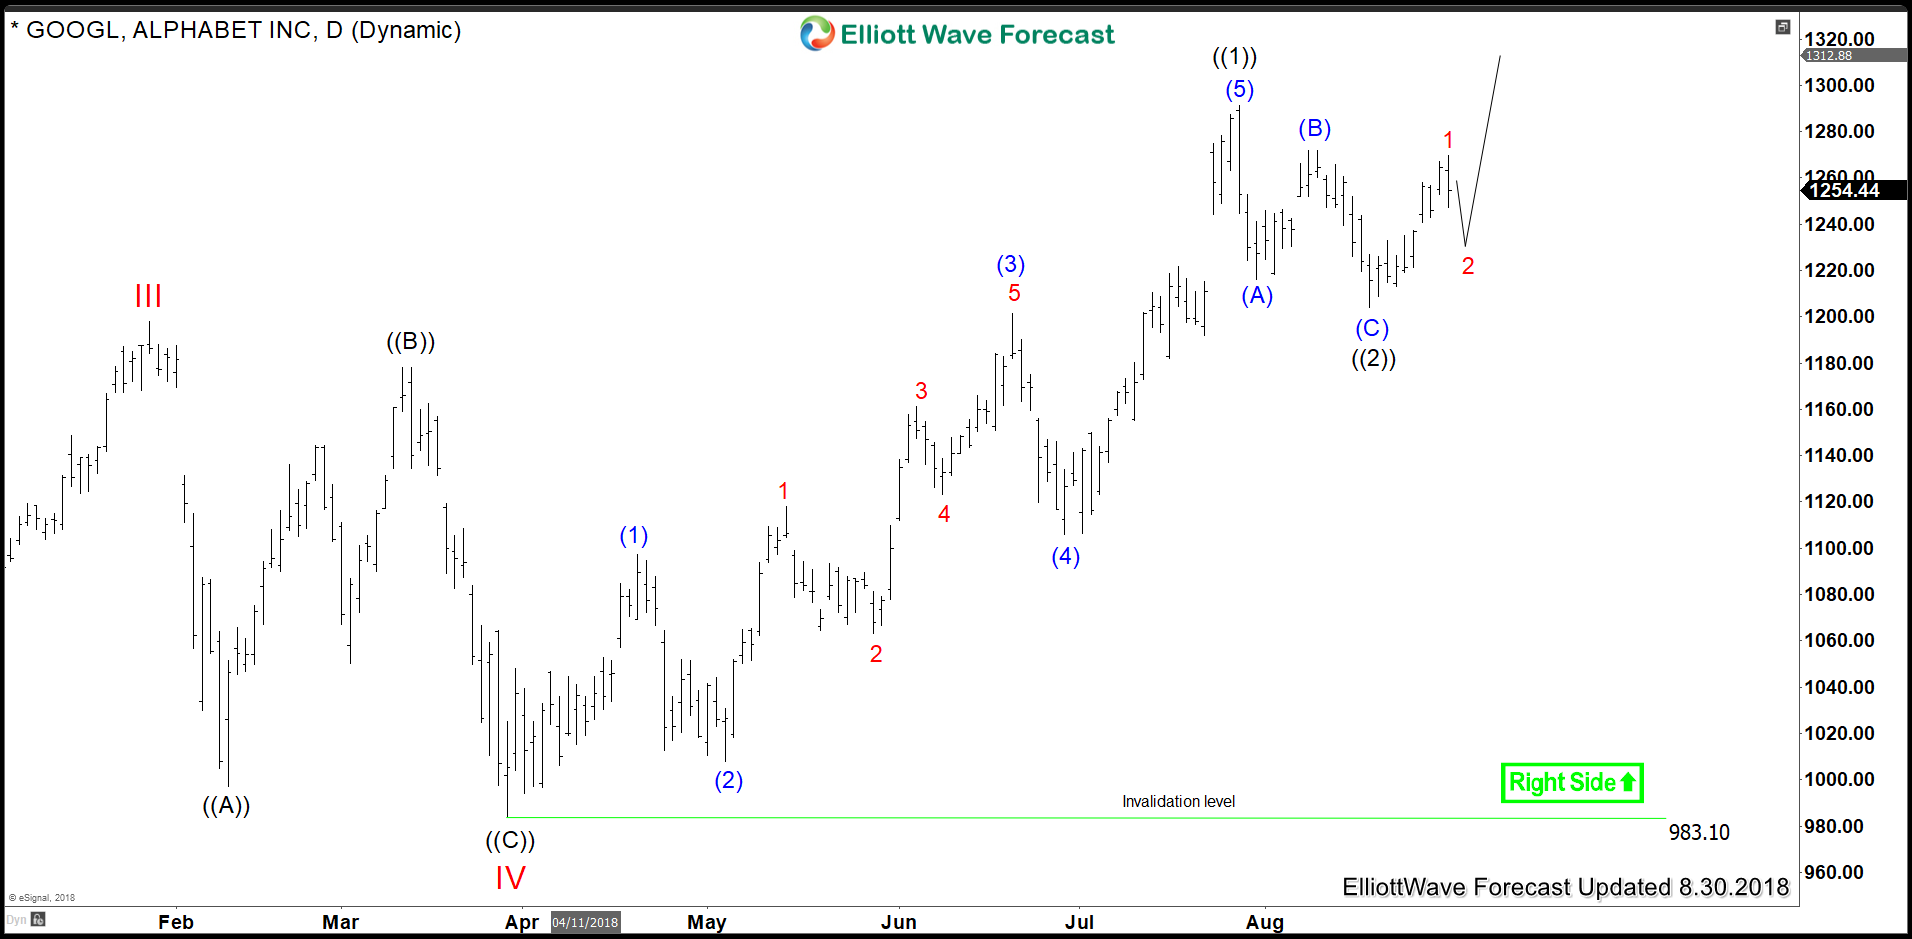 GOOGL Daily Chart 5 Waves